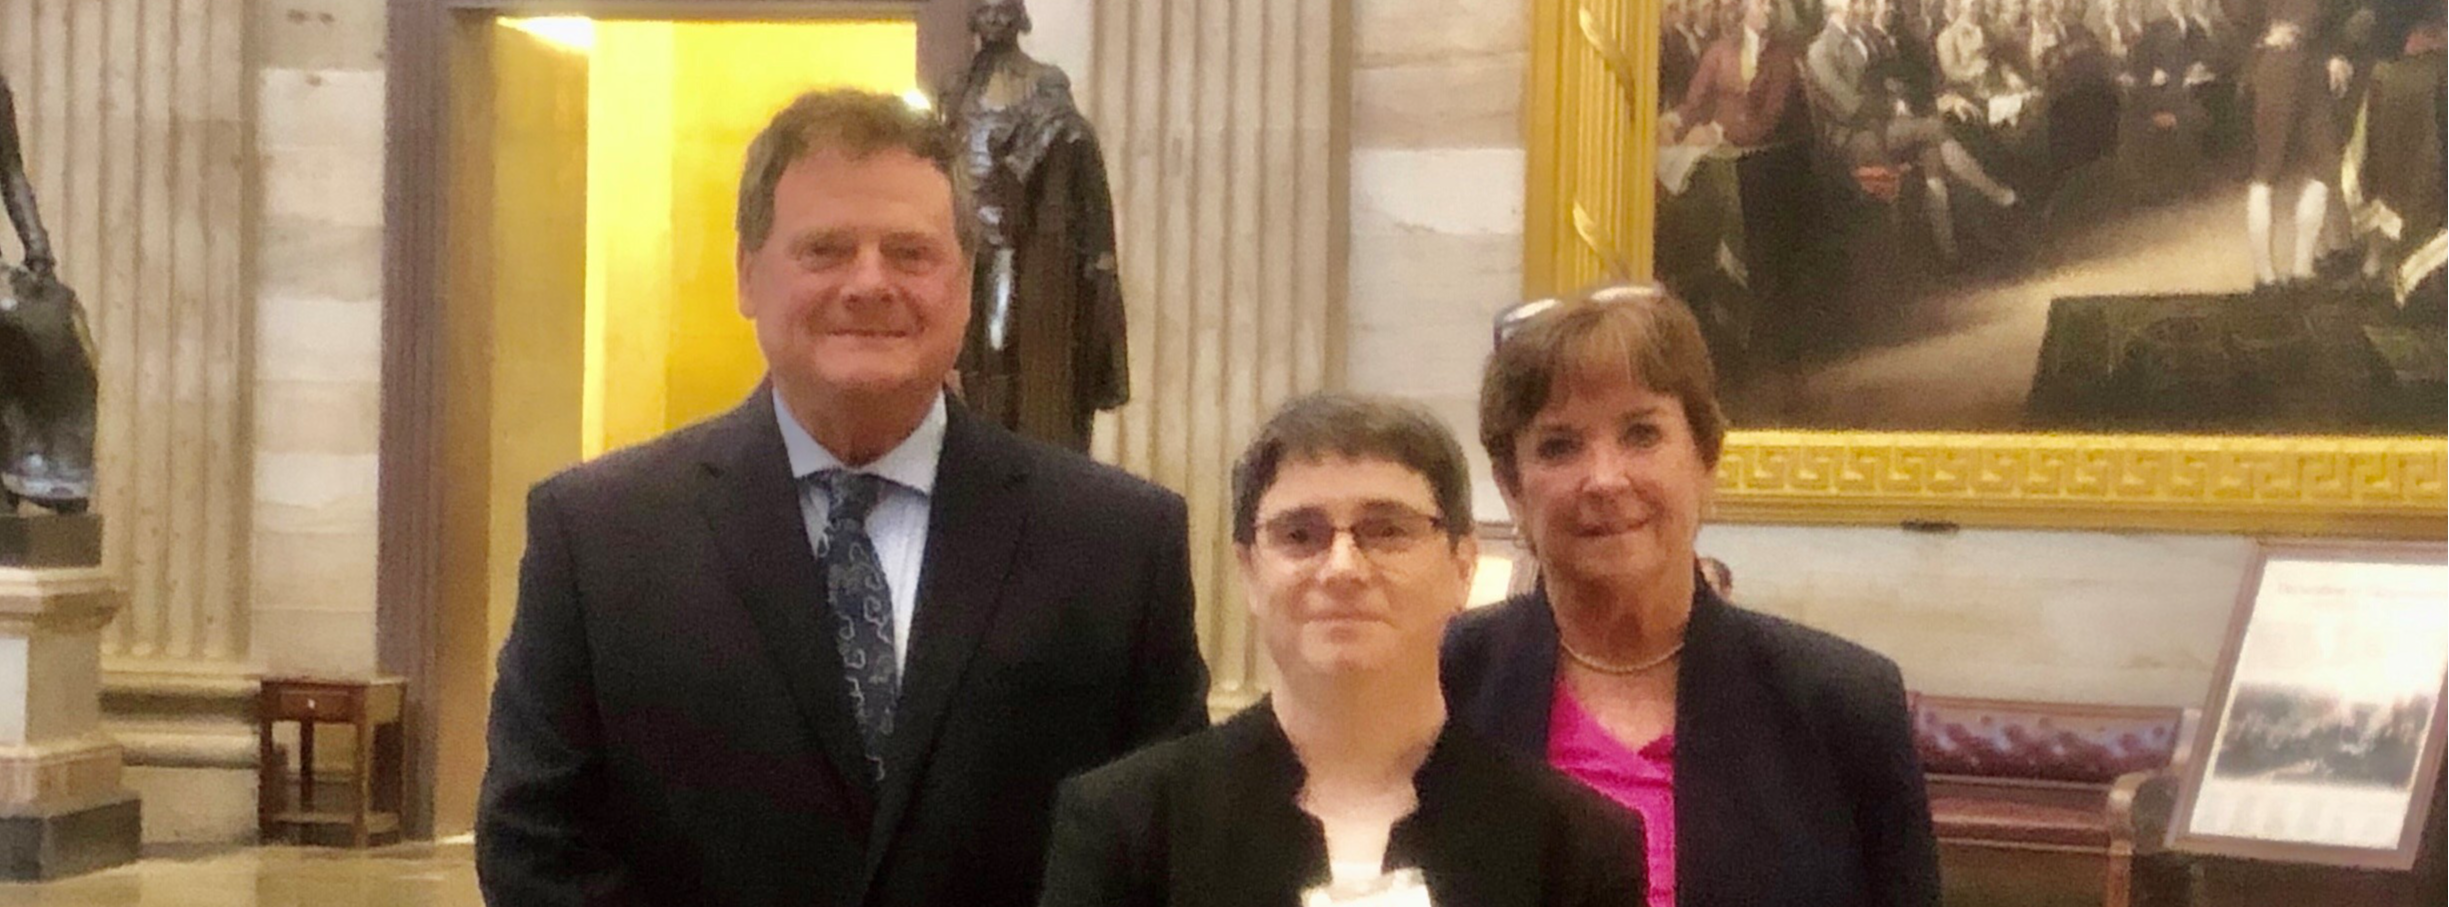 Rick Colpitts, Heather Perry, and Eileen King visiting Senator Collins at the 2021 AASA Legislative Advocacy Conference in D.C.